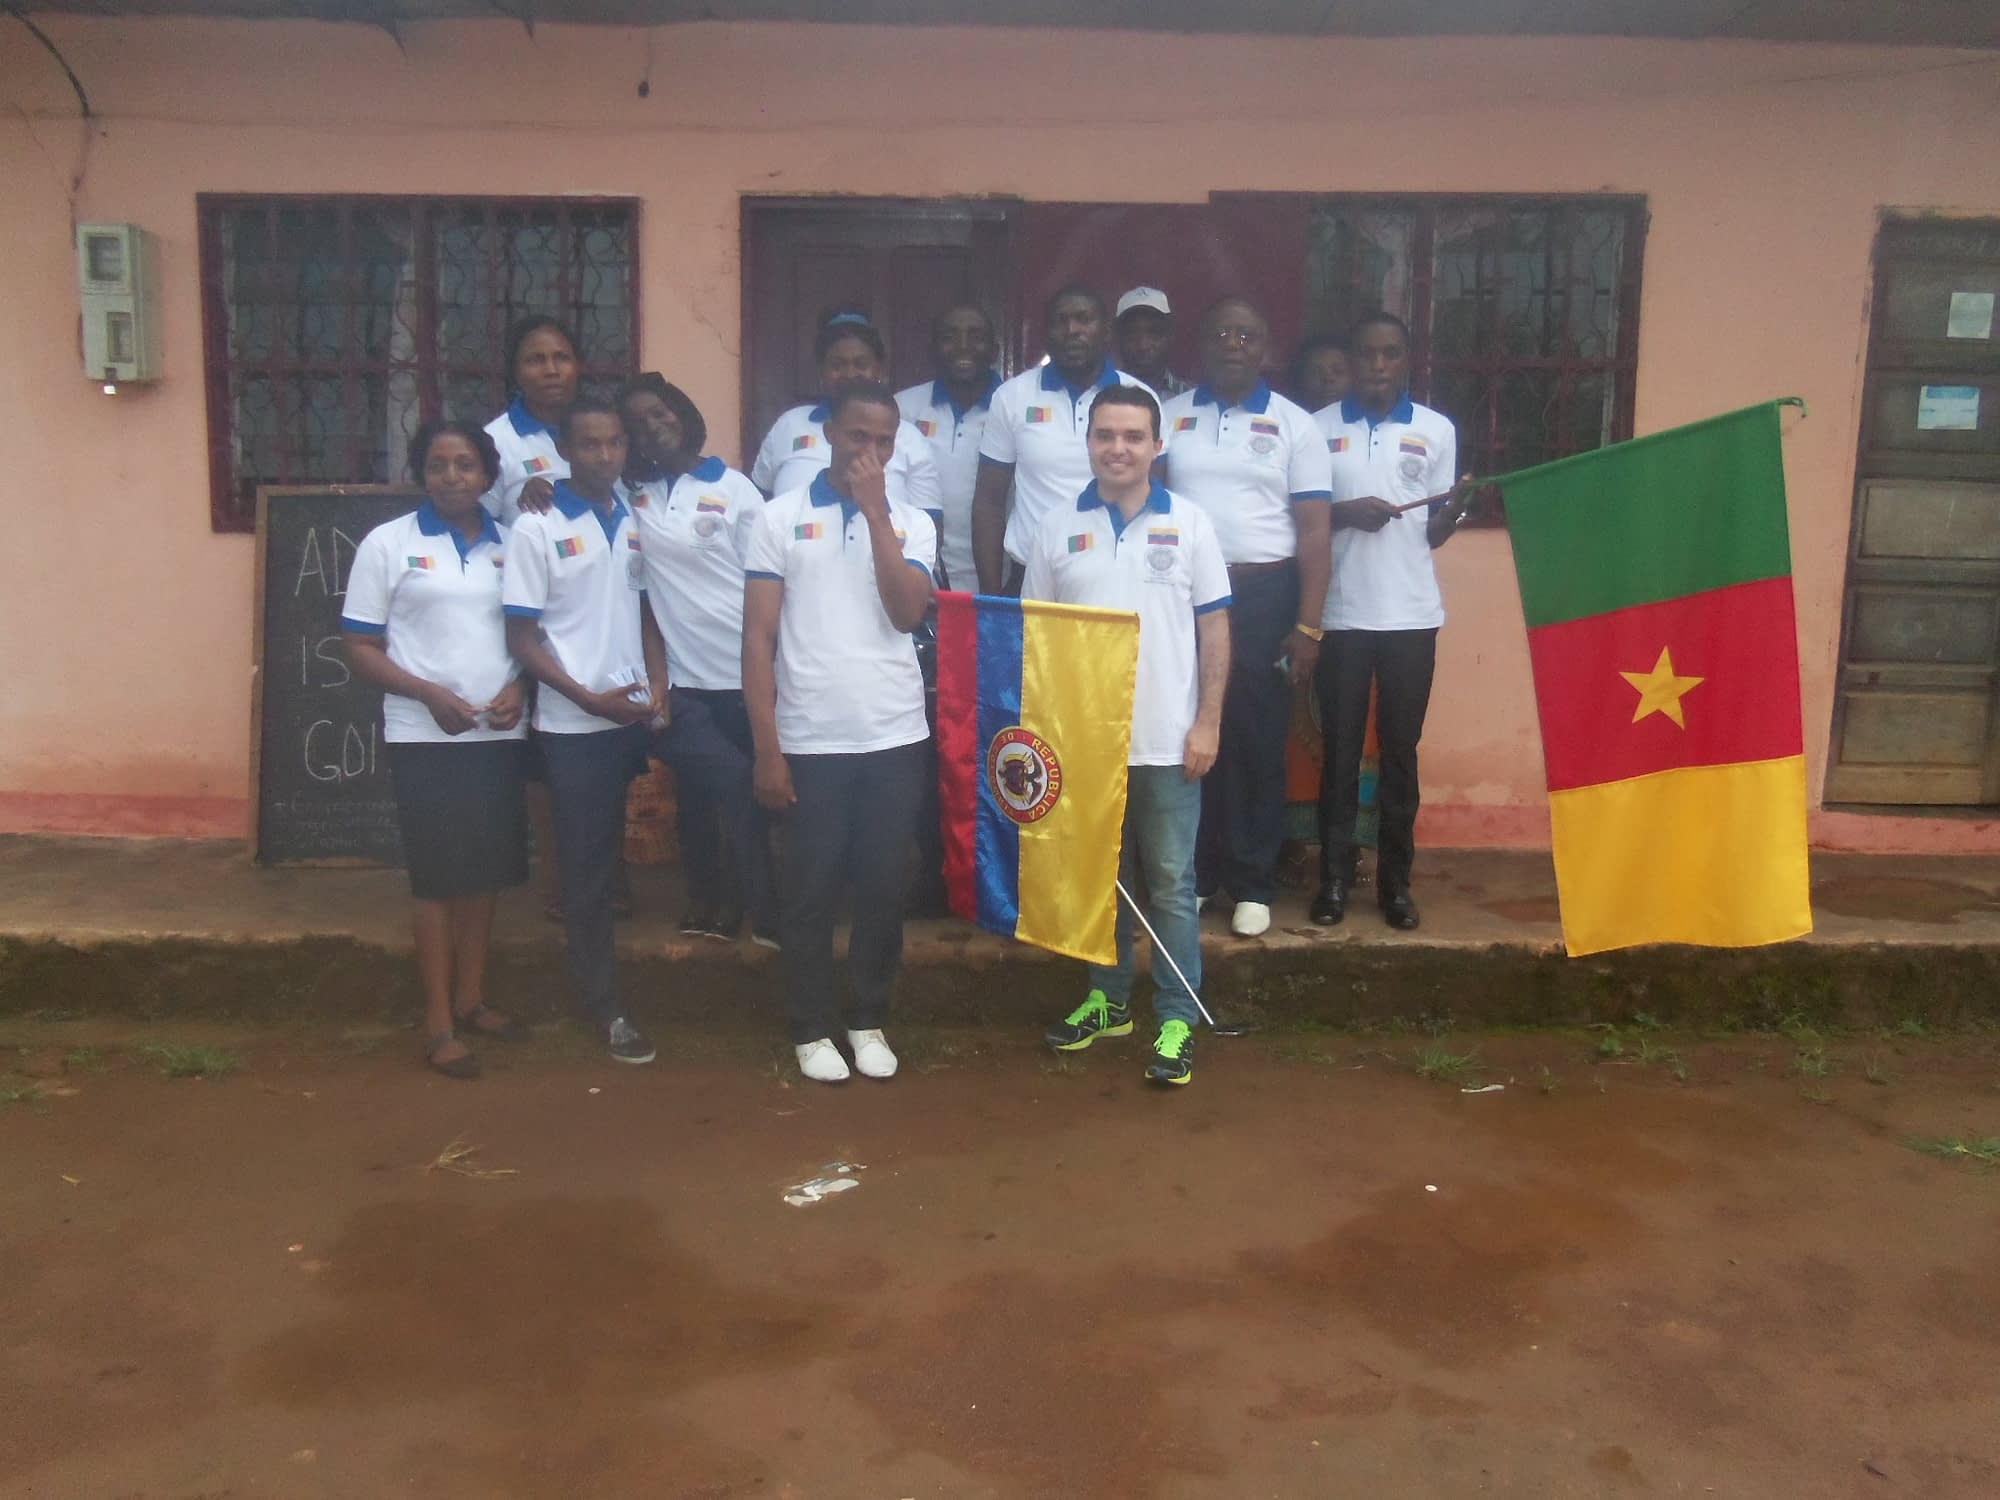 Eduardo and students outside the Tobby Vision school with the flag of Cameroon.